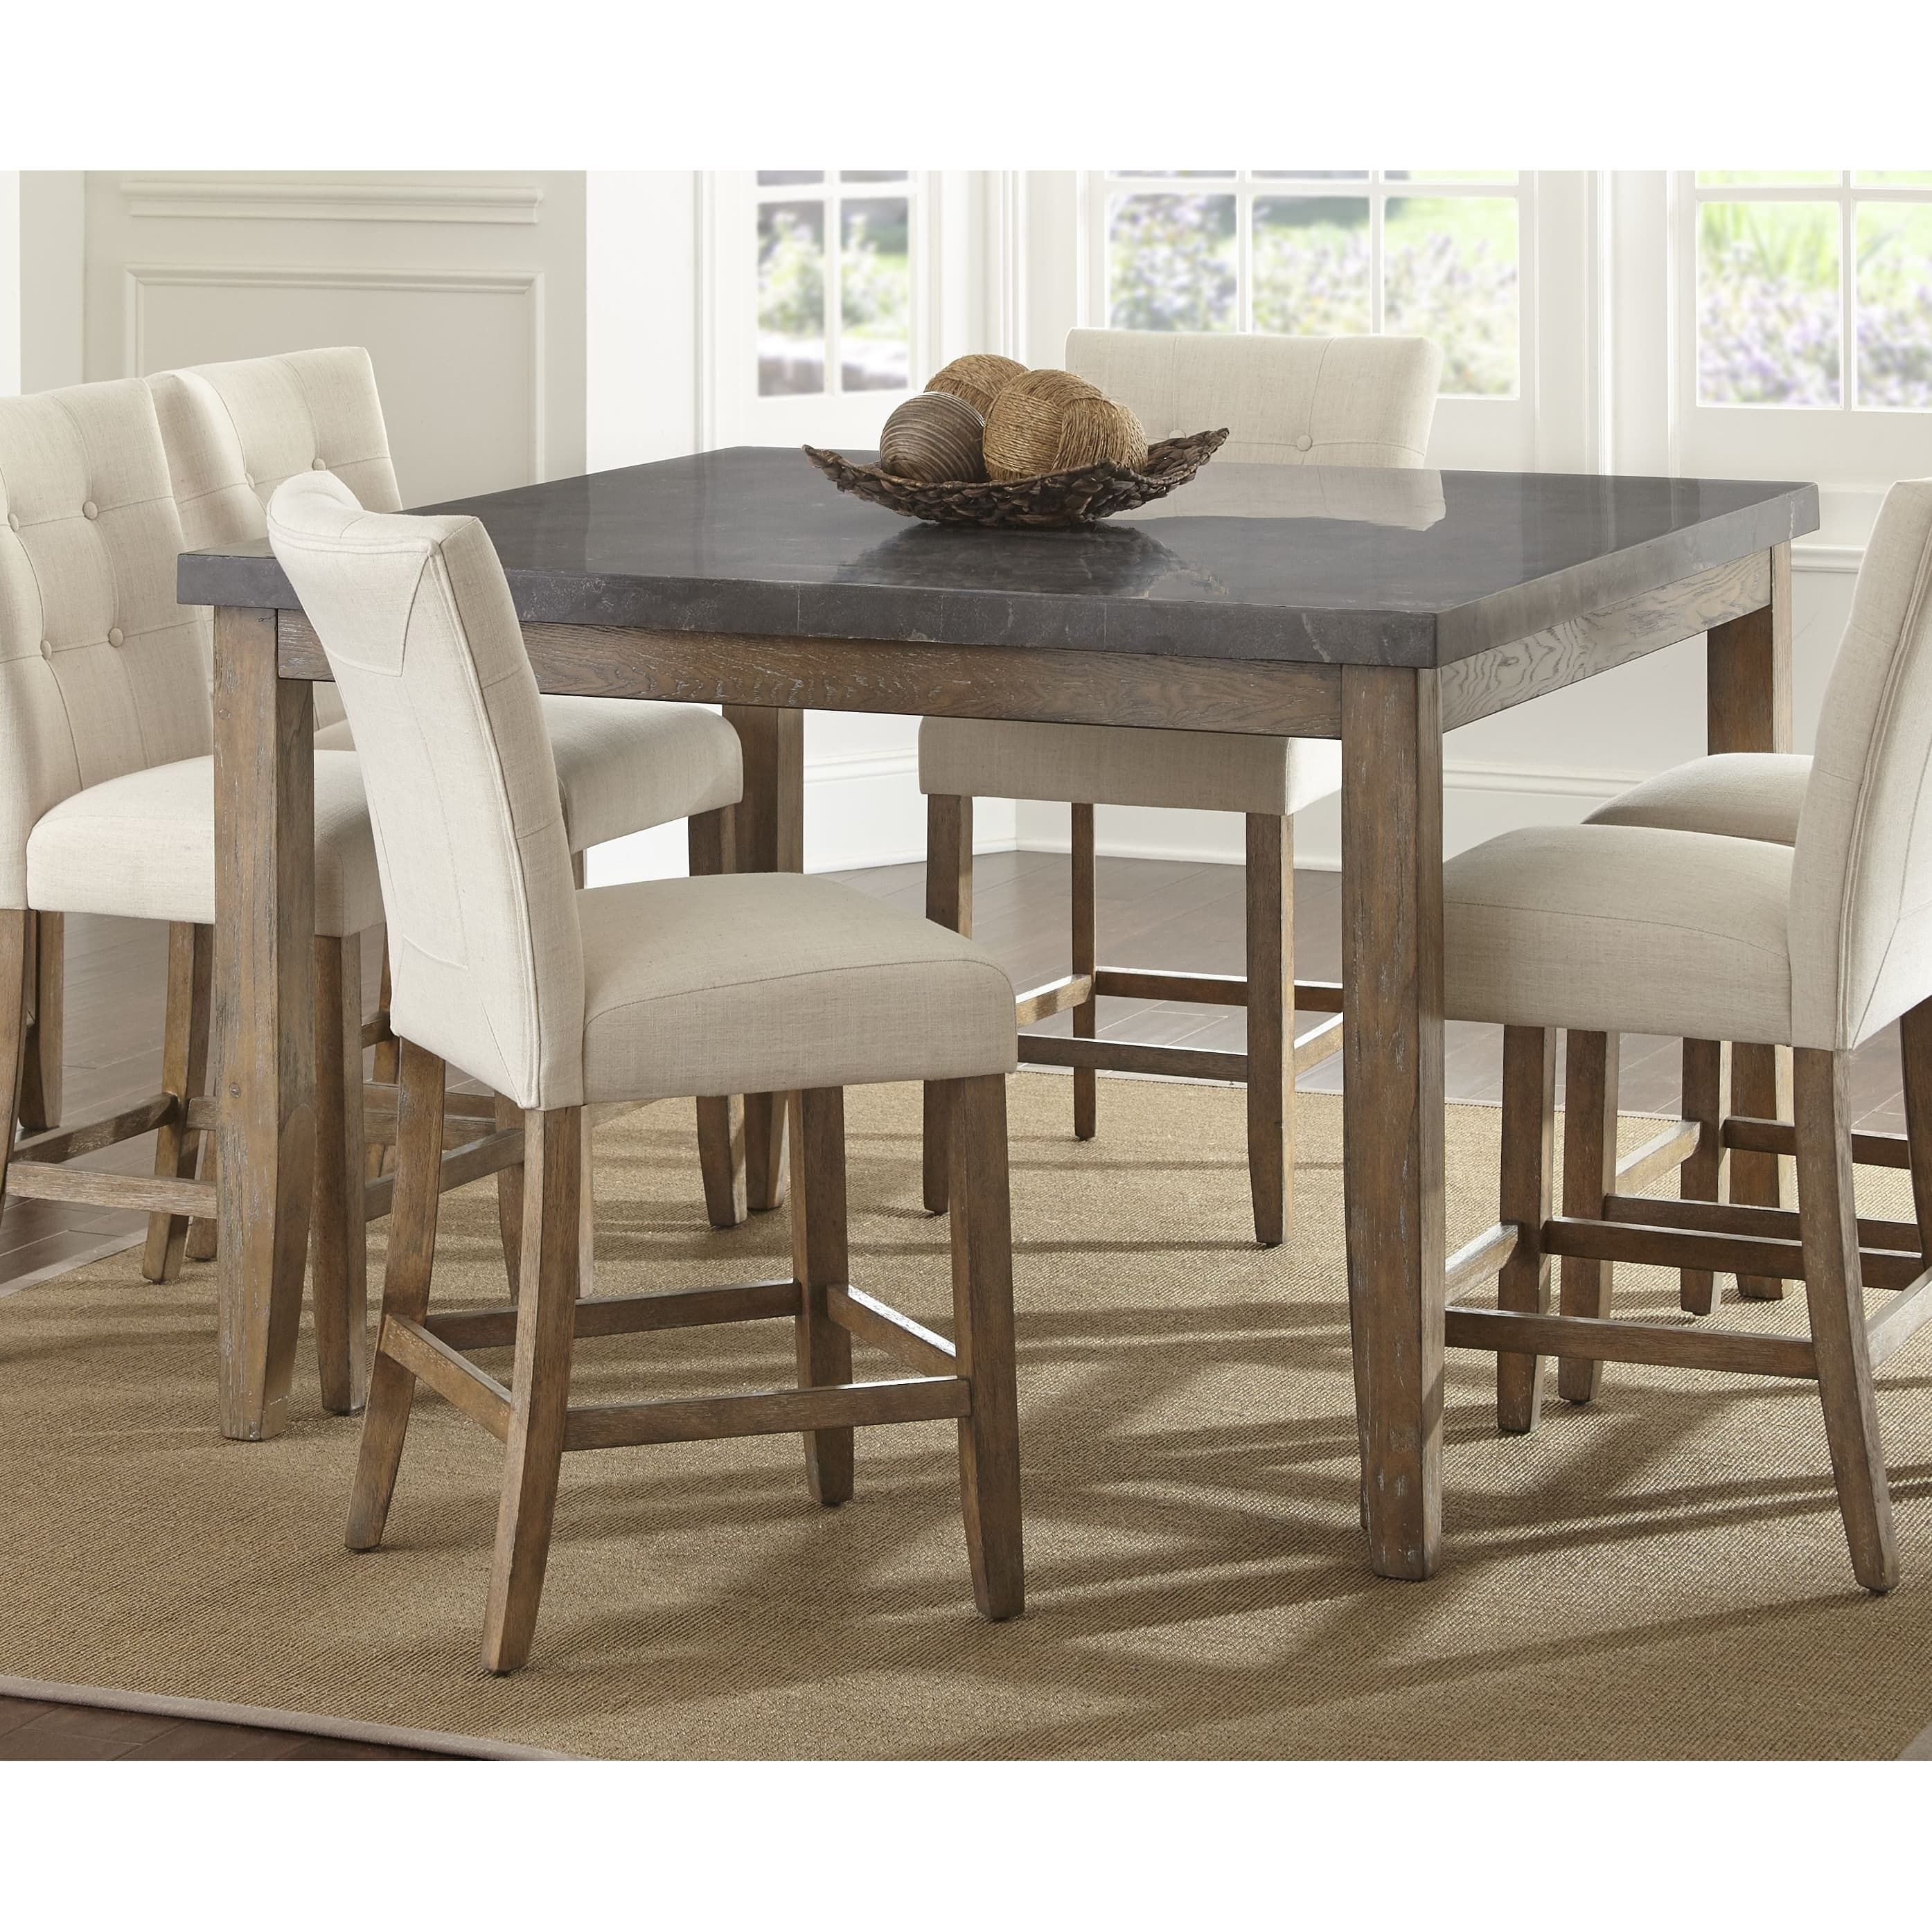 Greyson Living Danni 54 Inch Square Counter Height Dining Table Simple Stone Top Dining Room Tables Inspiration